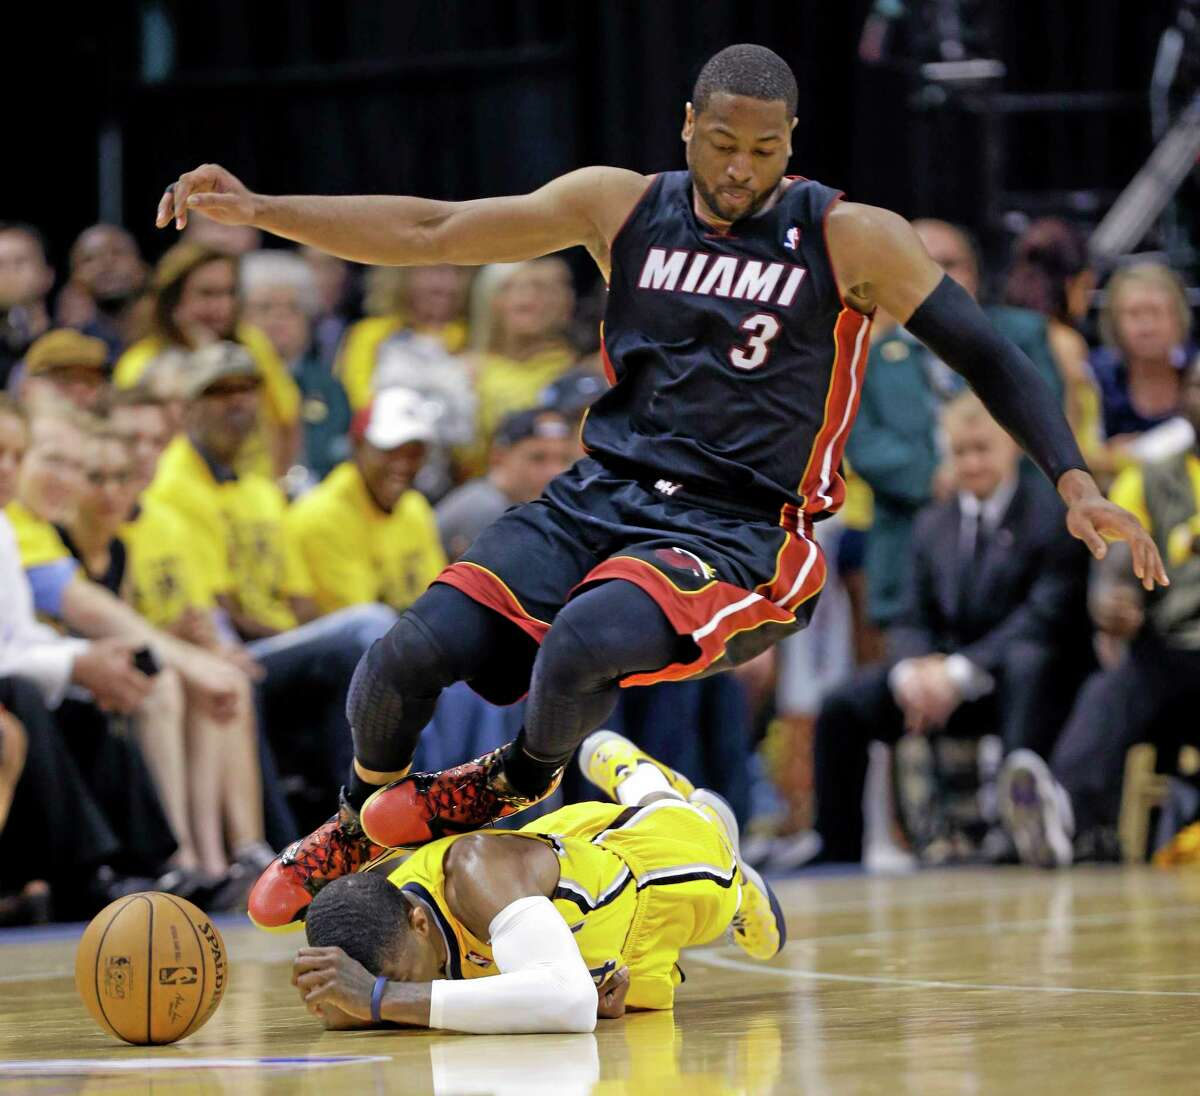 Miami Heat guard Dwyane Wade goes over Indiana Pacers forward Paul George as they go after a loose ball during the fourth quarter of Game 2 of the Eastern Conference finals Tuesday night in Indianapolis.